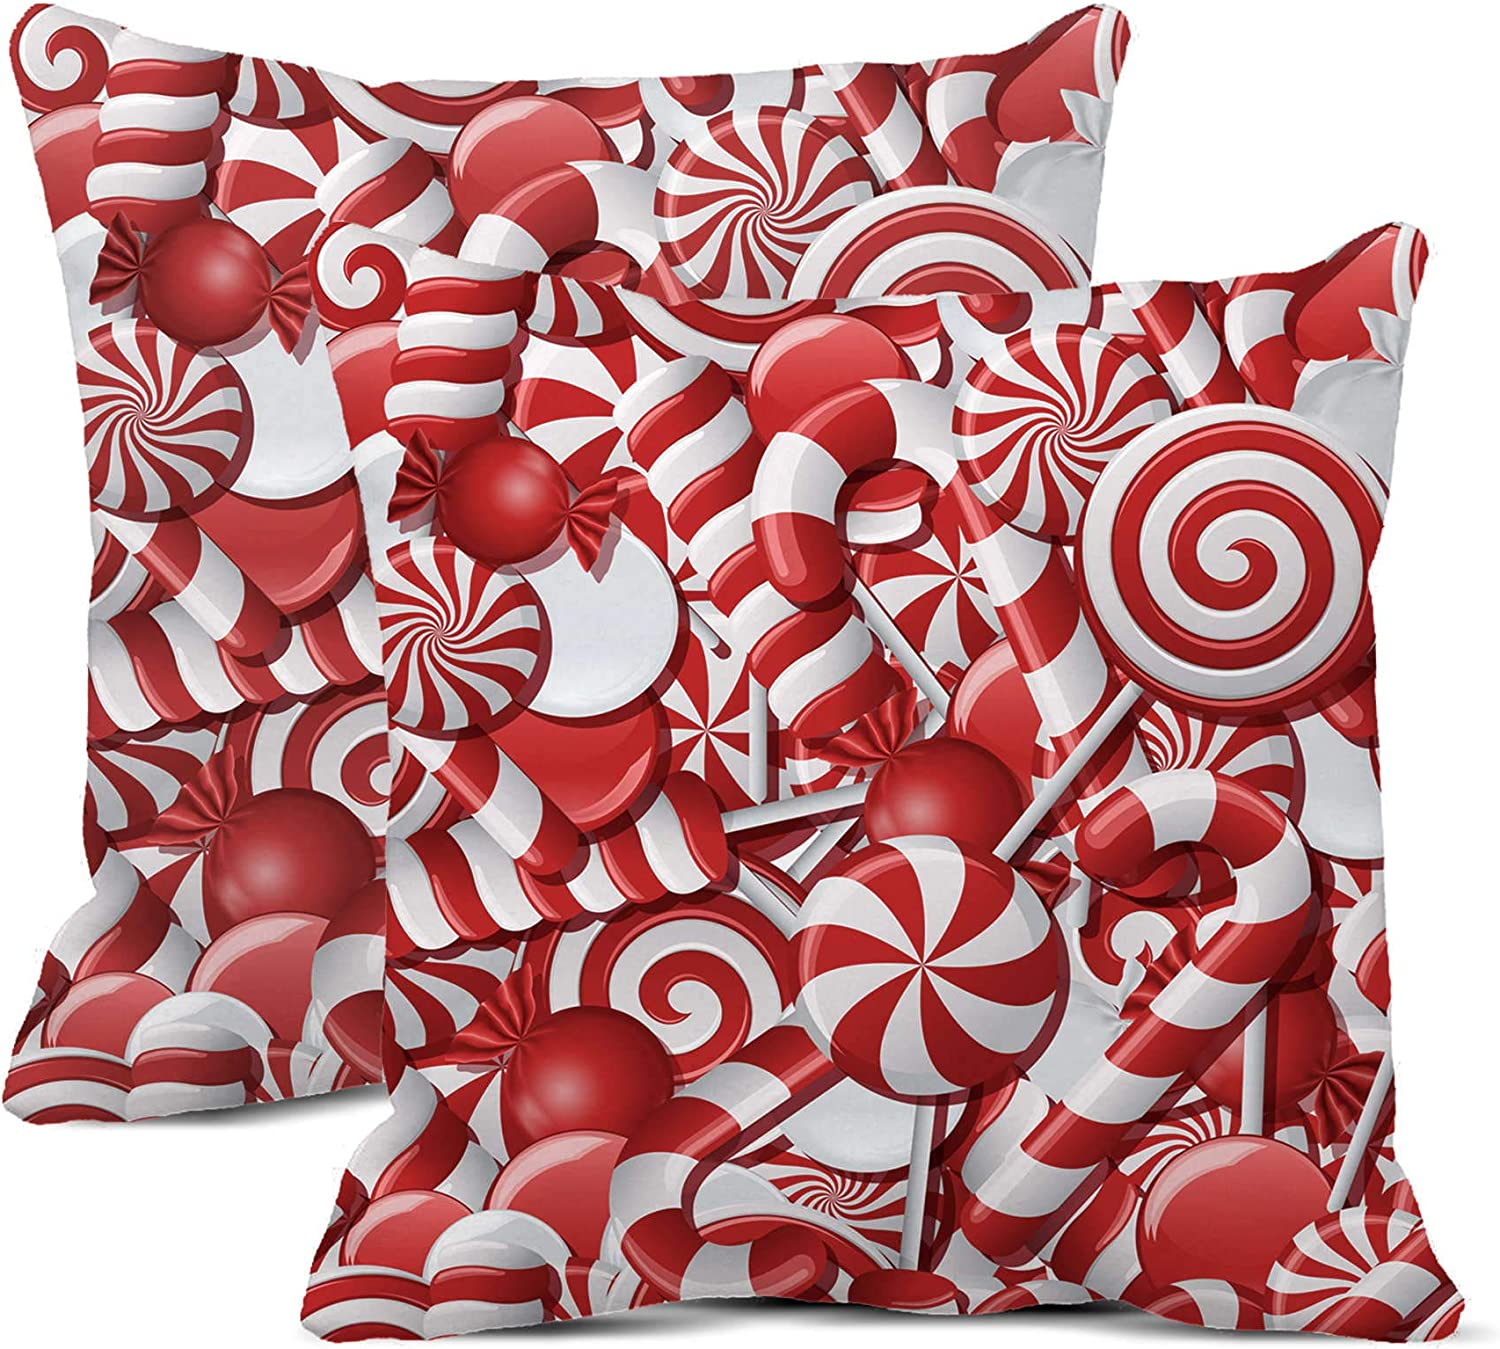 rouihot Set of 2 Throw Pillow Covers 16x16 Inch with Different Red and White Candies Font Candy Christmas Xmas ABC Alphabet Cane Home Decor Pillowcases Square Cushion Covers for Sofa Bed